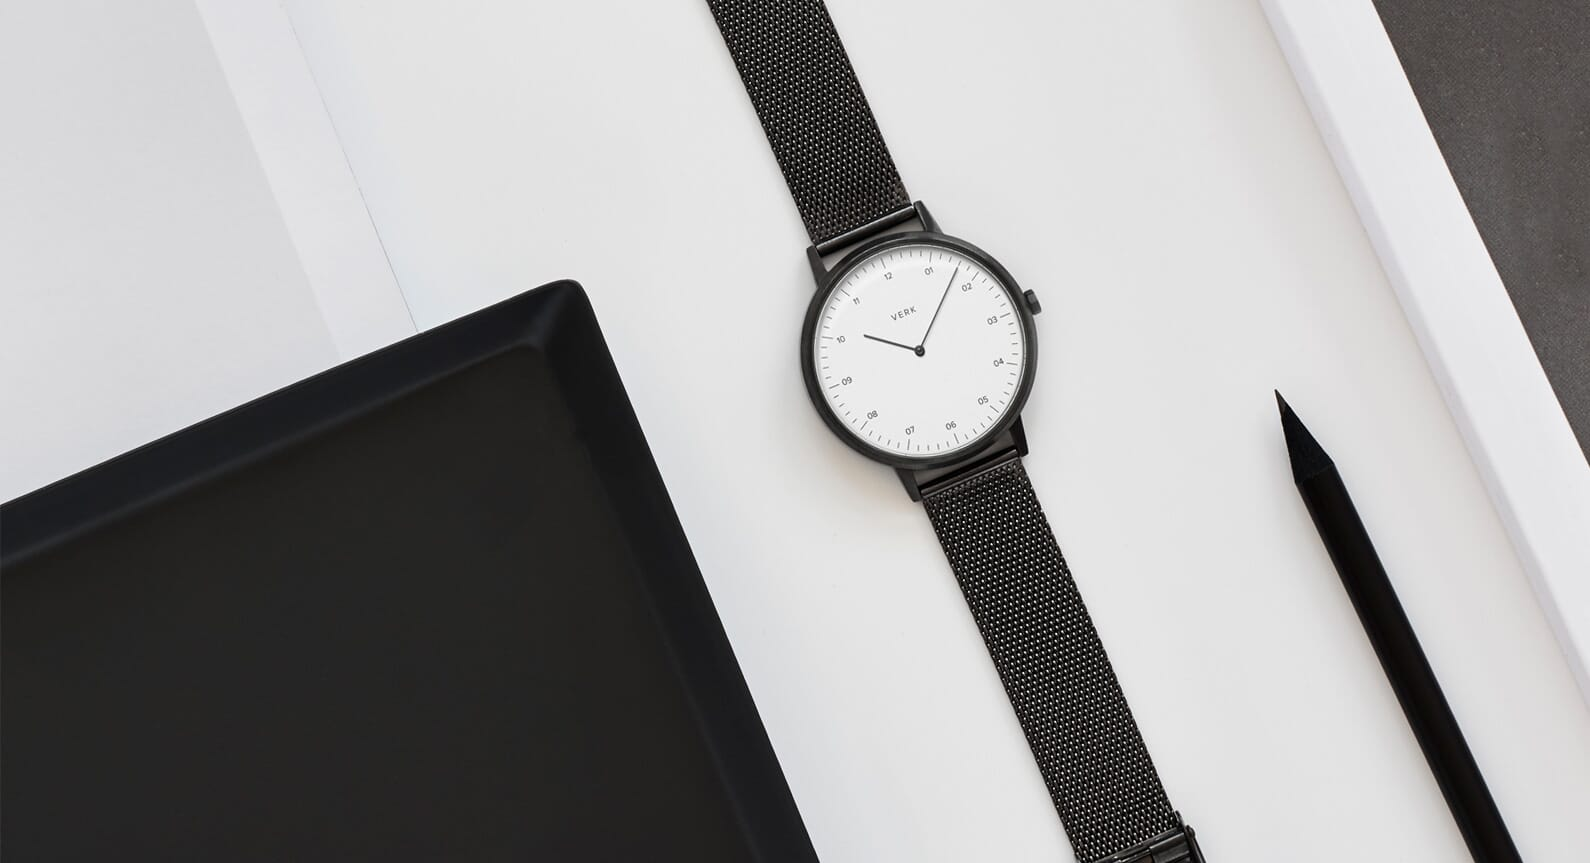 Introducing VERK - The New Scandinavian Watch Brand That You Need To Know